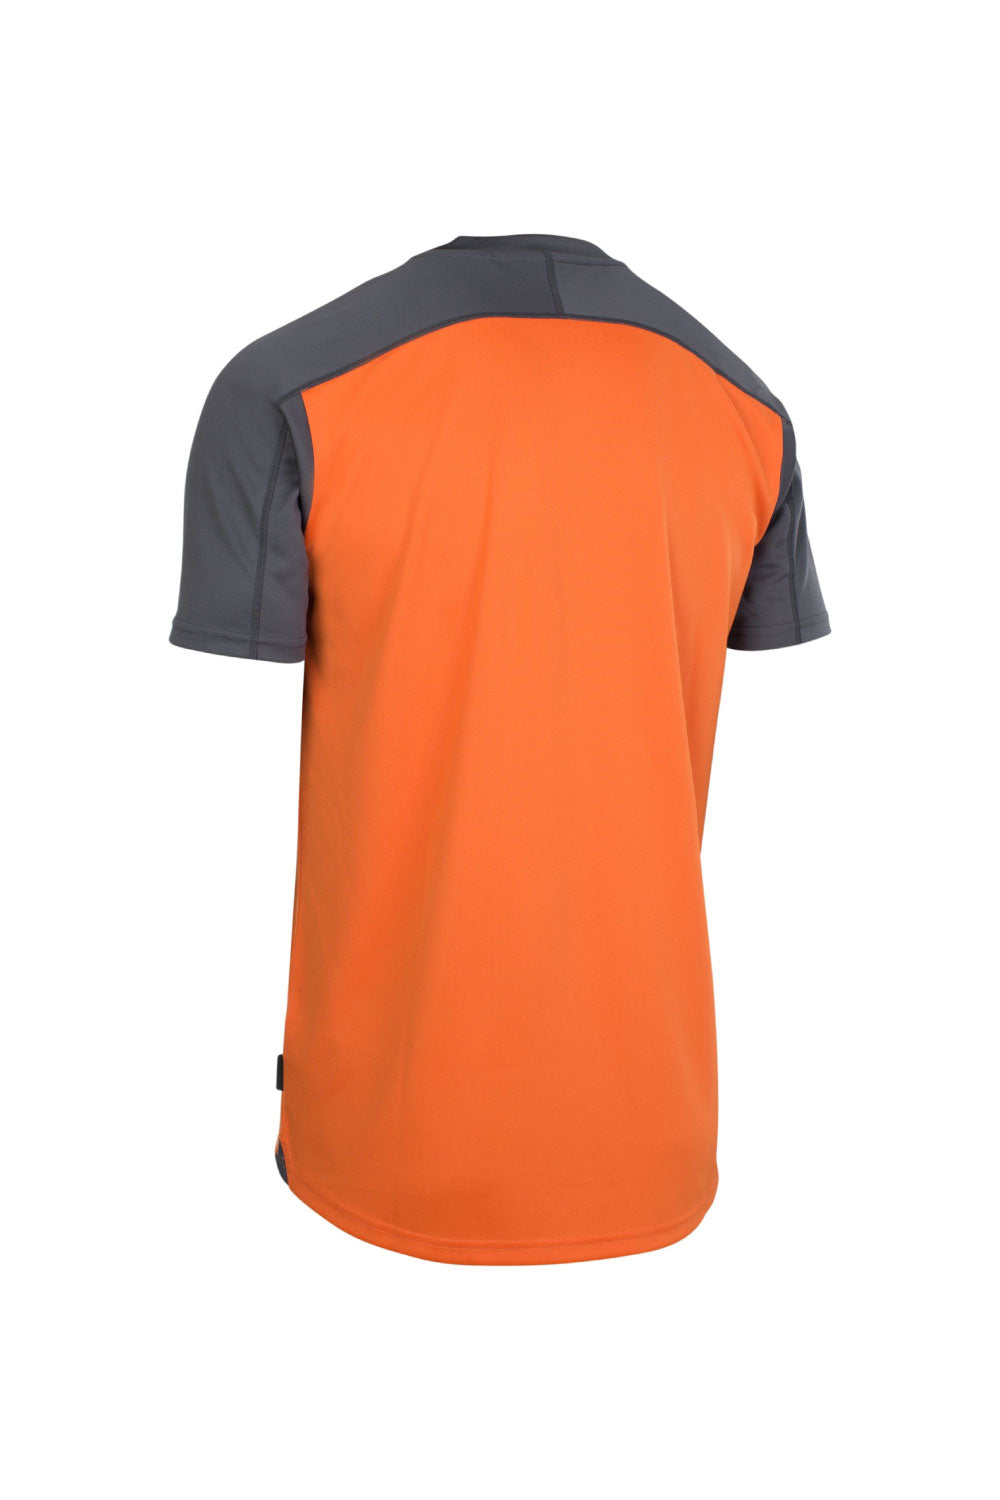 ION 2020 Men's Traze Short Sleeve MTB Jersey